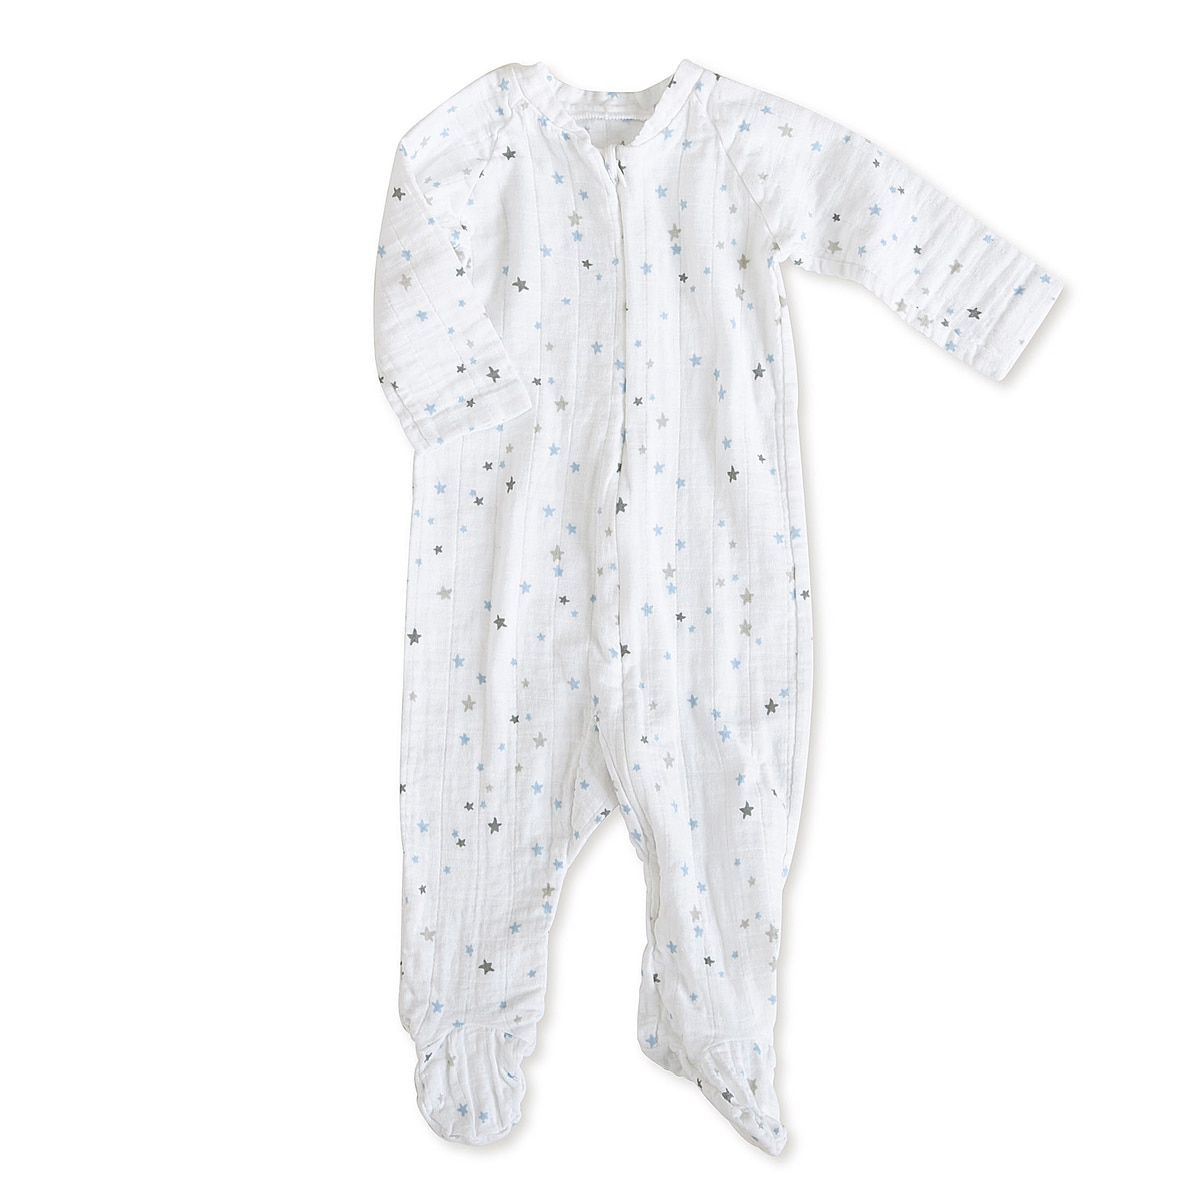 aden + anais Boys 3-6 Months Night Sky Starburst Muslin Long-Sleeve Zip One Piece